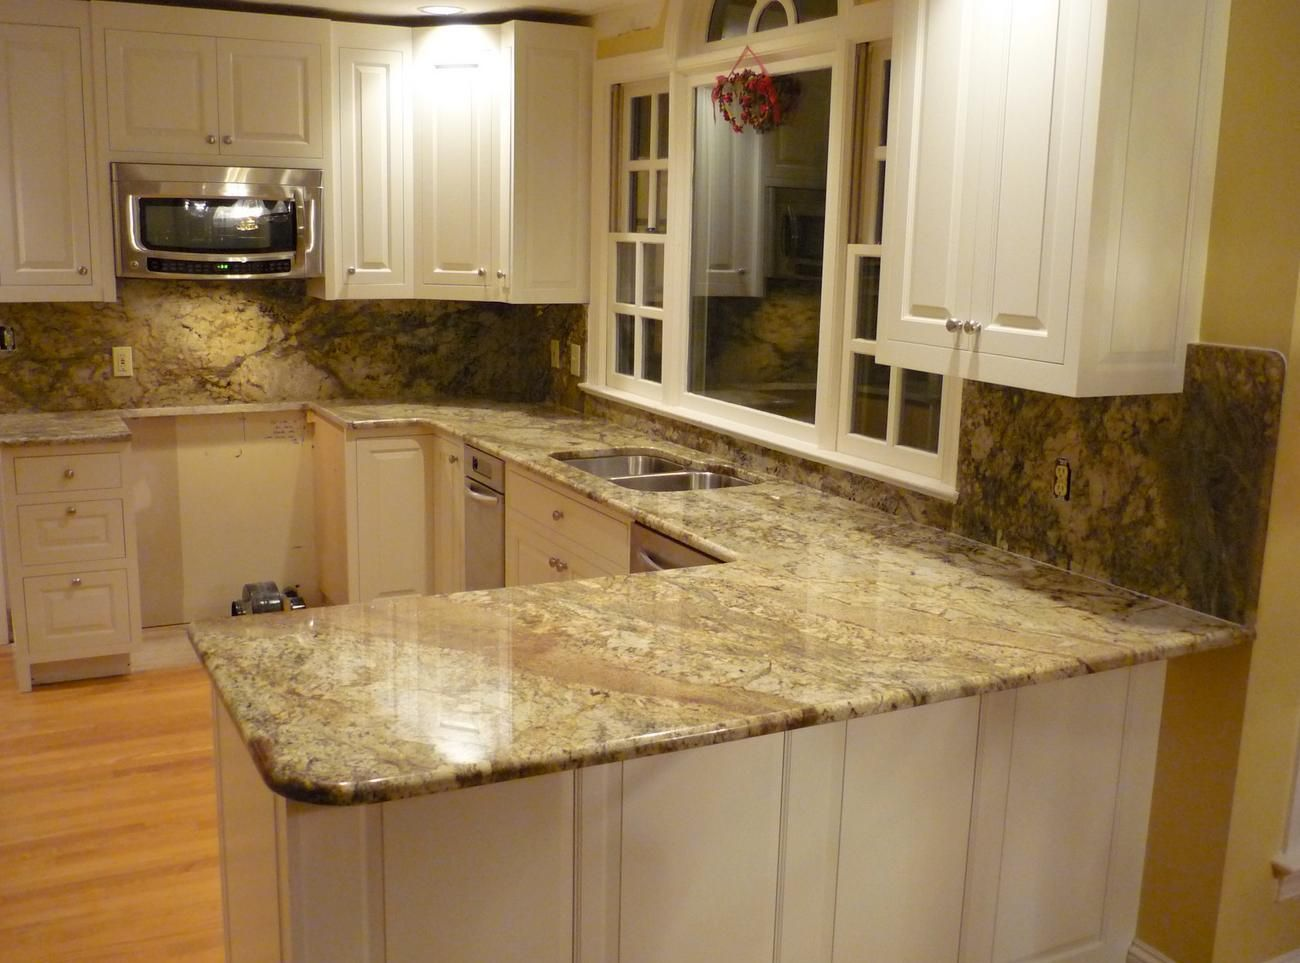 alluring best choose home ideas to material the for kitchen design how countertops shop countertop